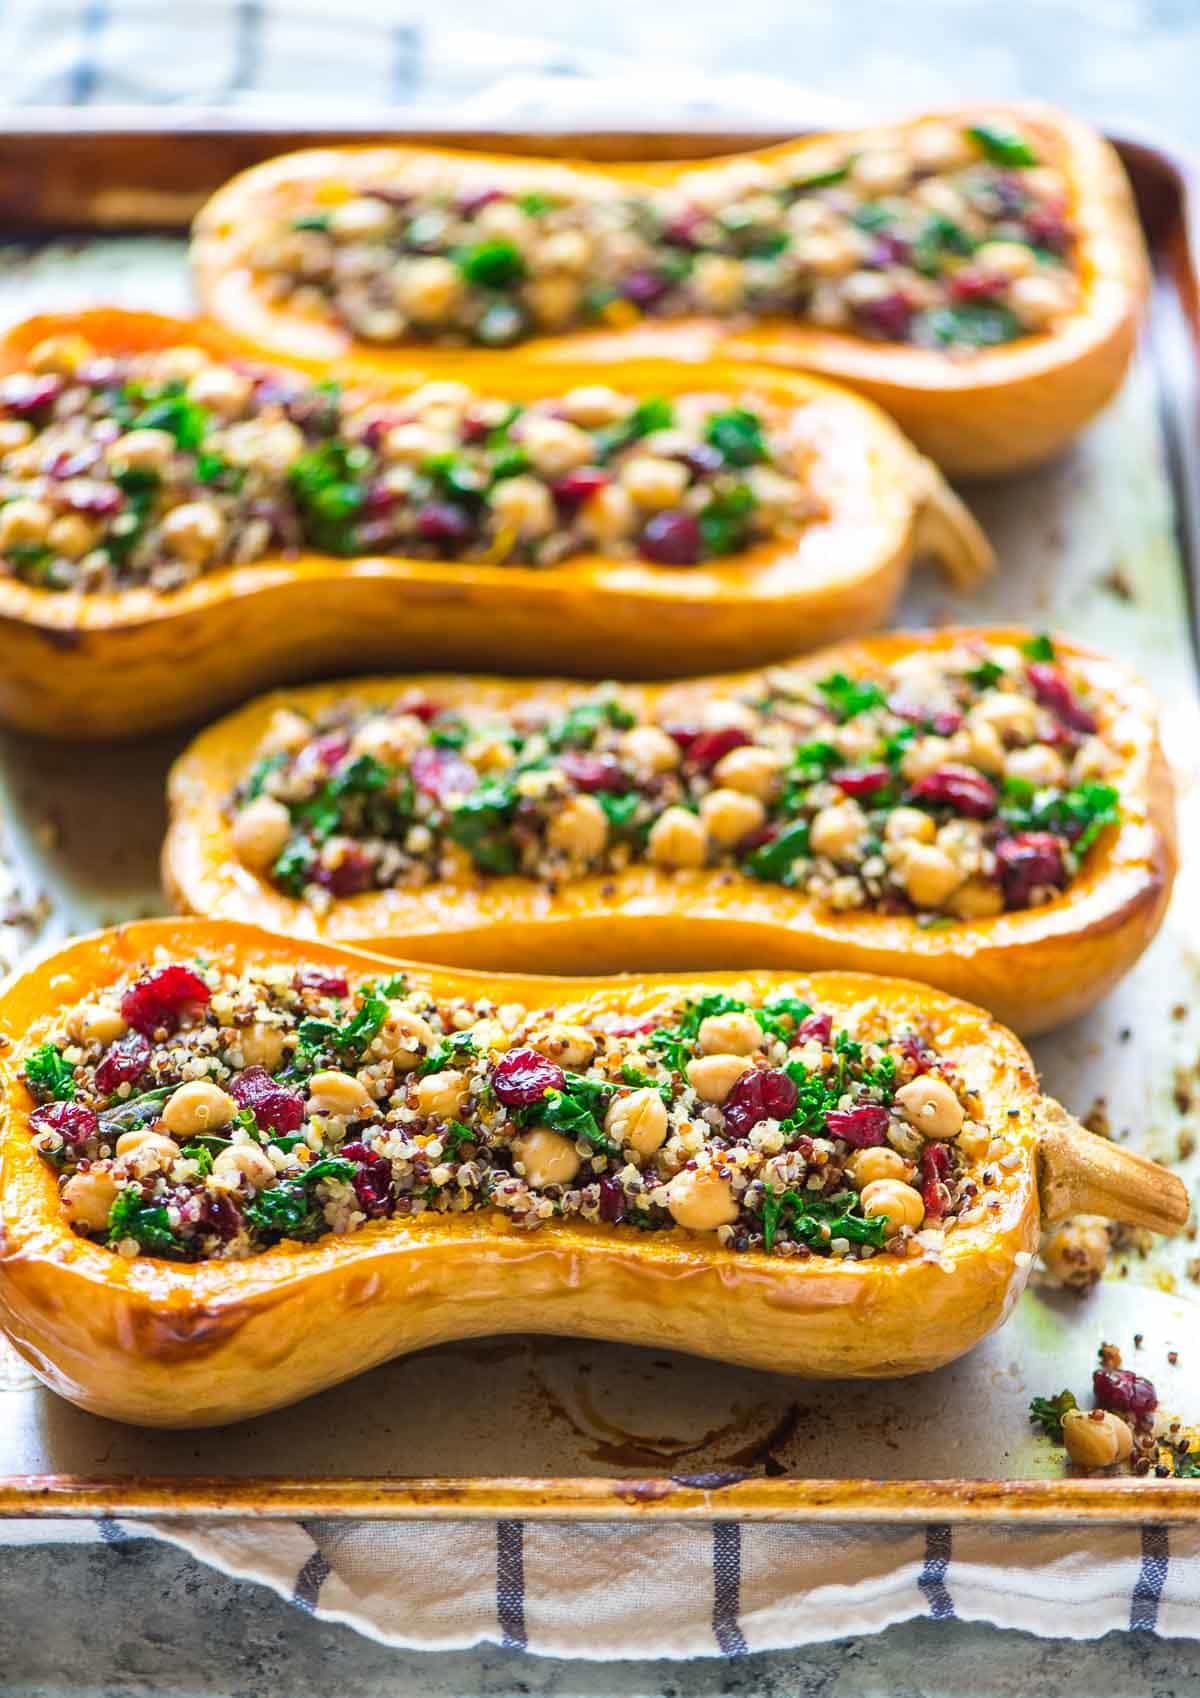 Quinoa Stuffed Butternut Squash with Cranberries and Kale. An easy, healthy vegetarian meal that everyone will love! #fall | wellplated.com @wellplated